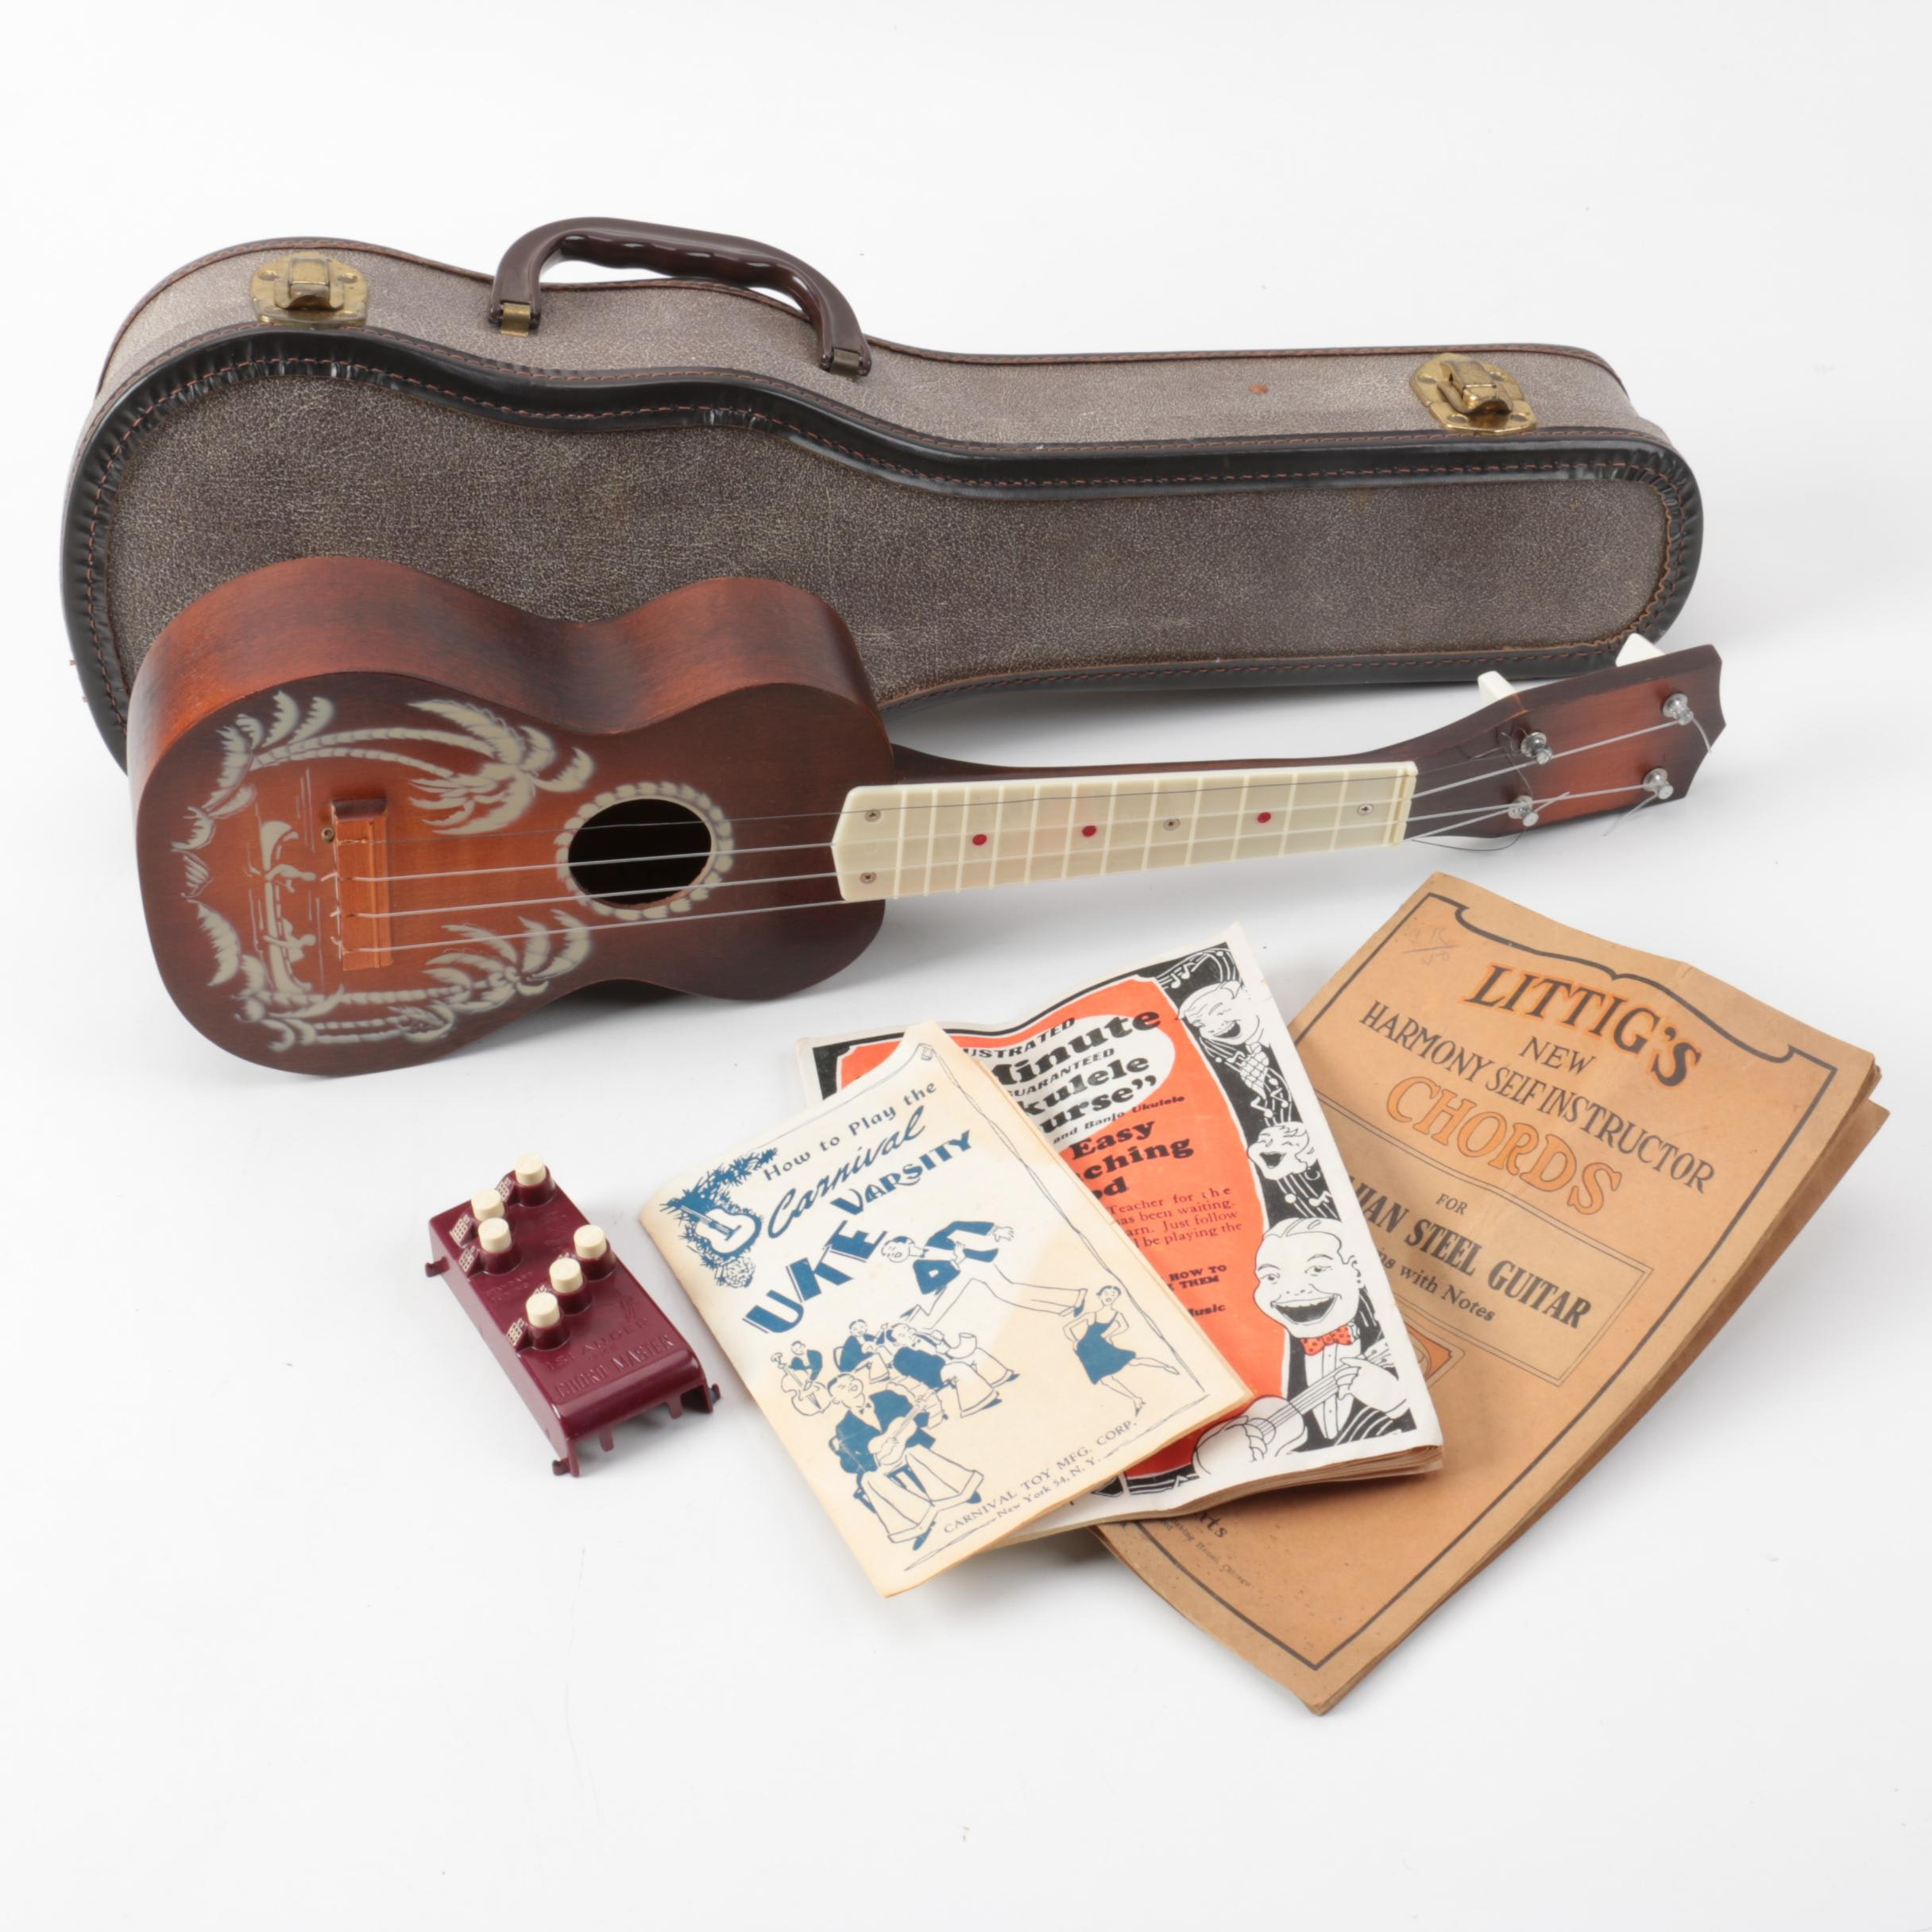 Vintage Ukulele with Case and Accessories